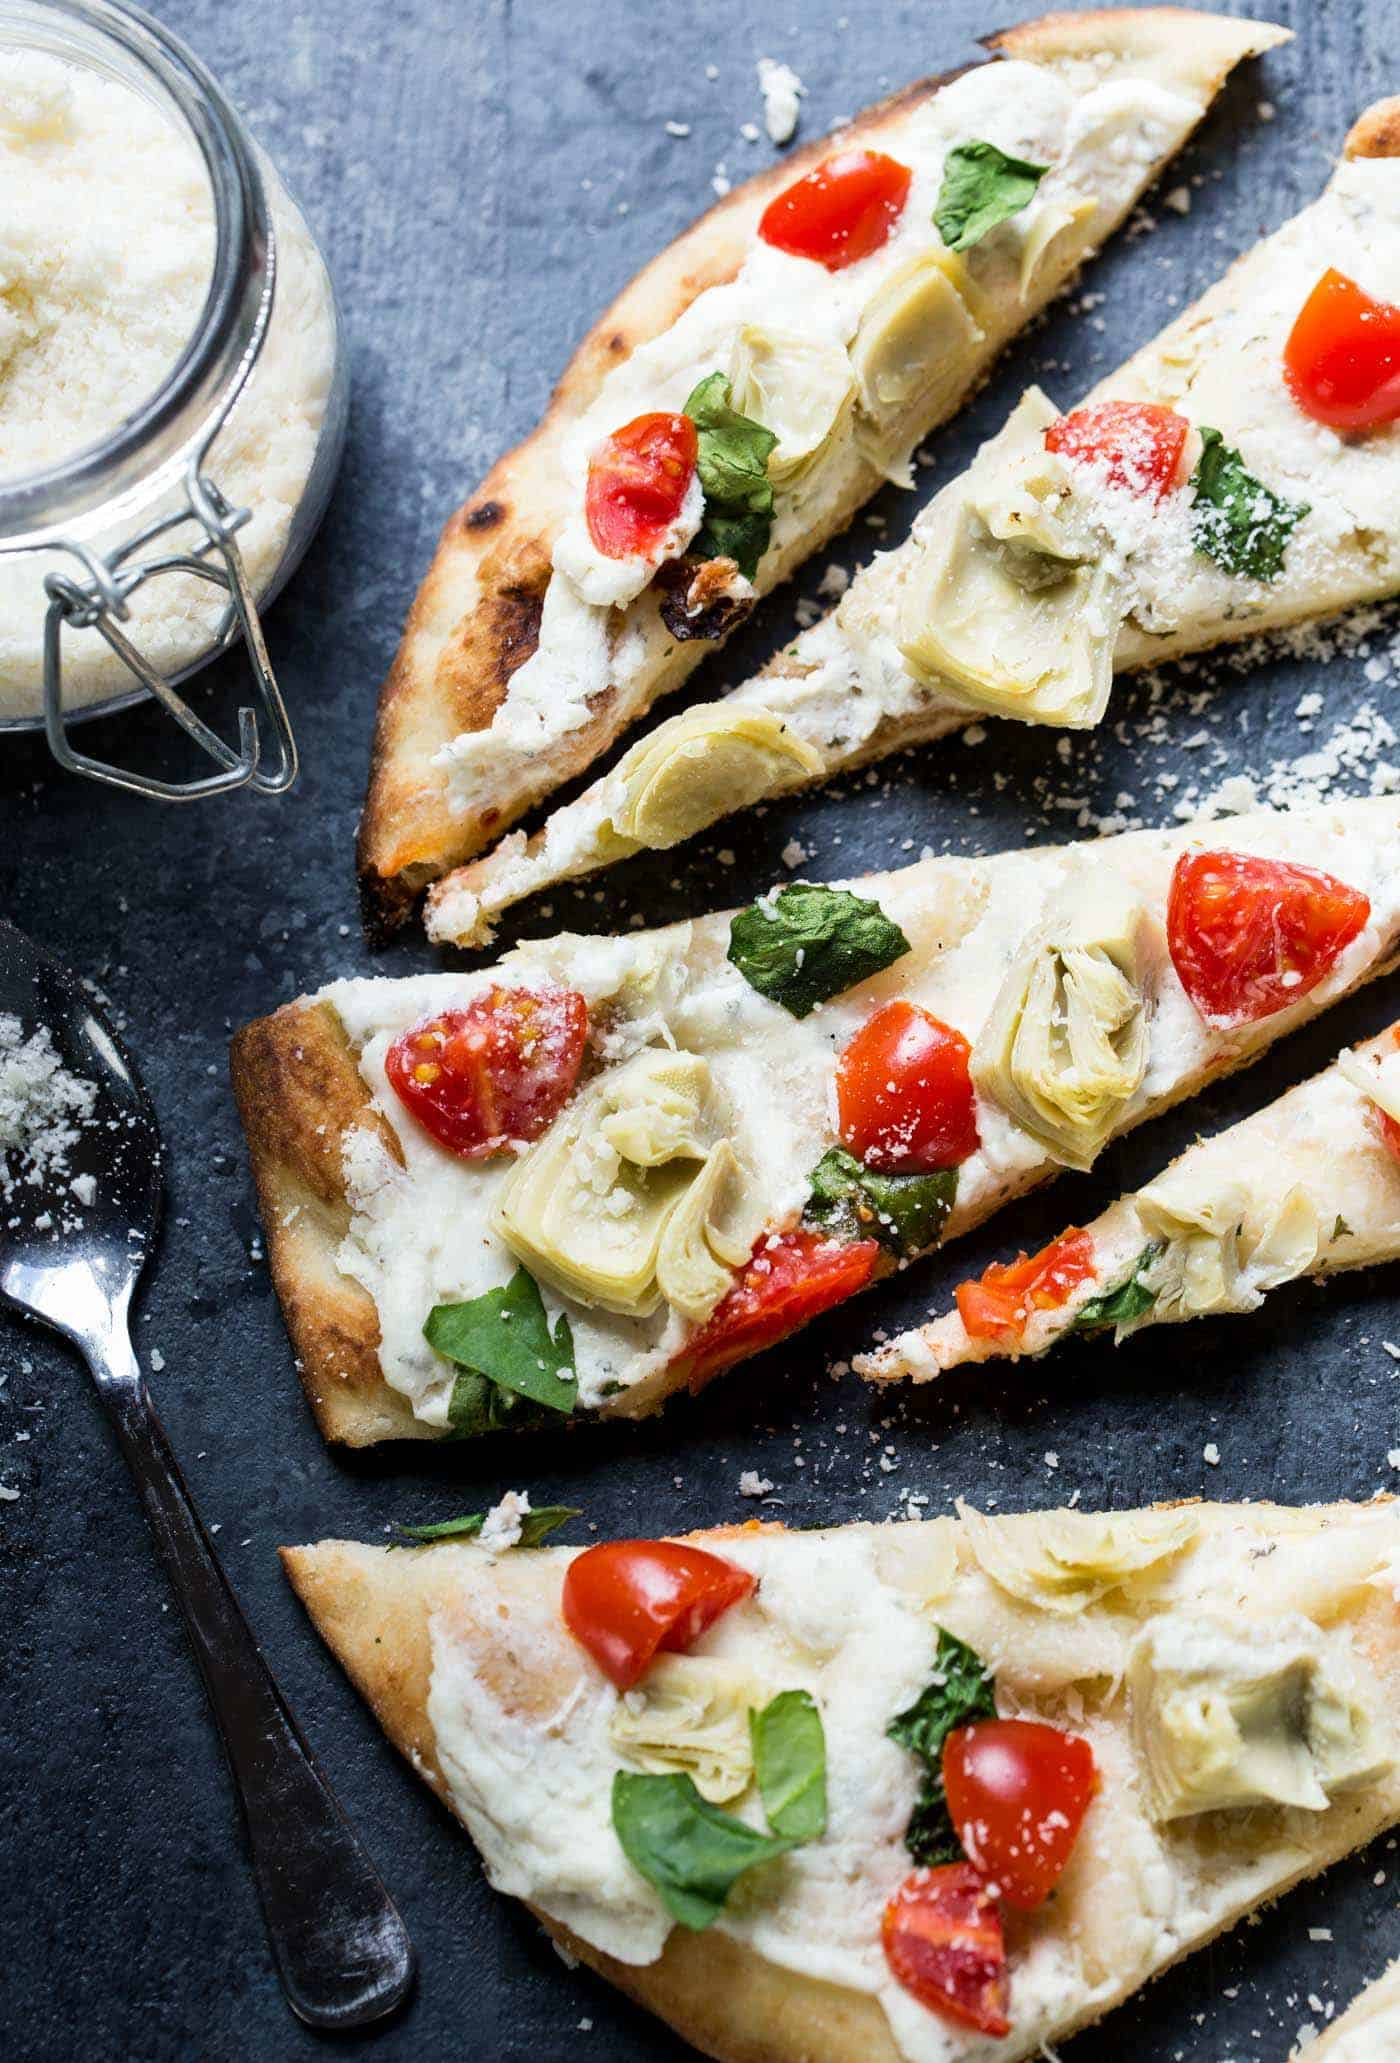 6 ingredients and a quick spin on the grill (or the oven) is all it takes to make this simple and crazy good Grilled Vegetable Flatbread Pizza. Enjoy it as an easy appetizer or light dinner!